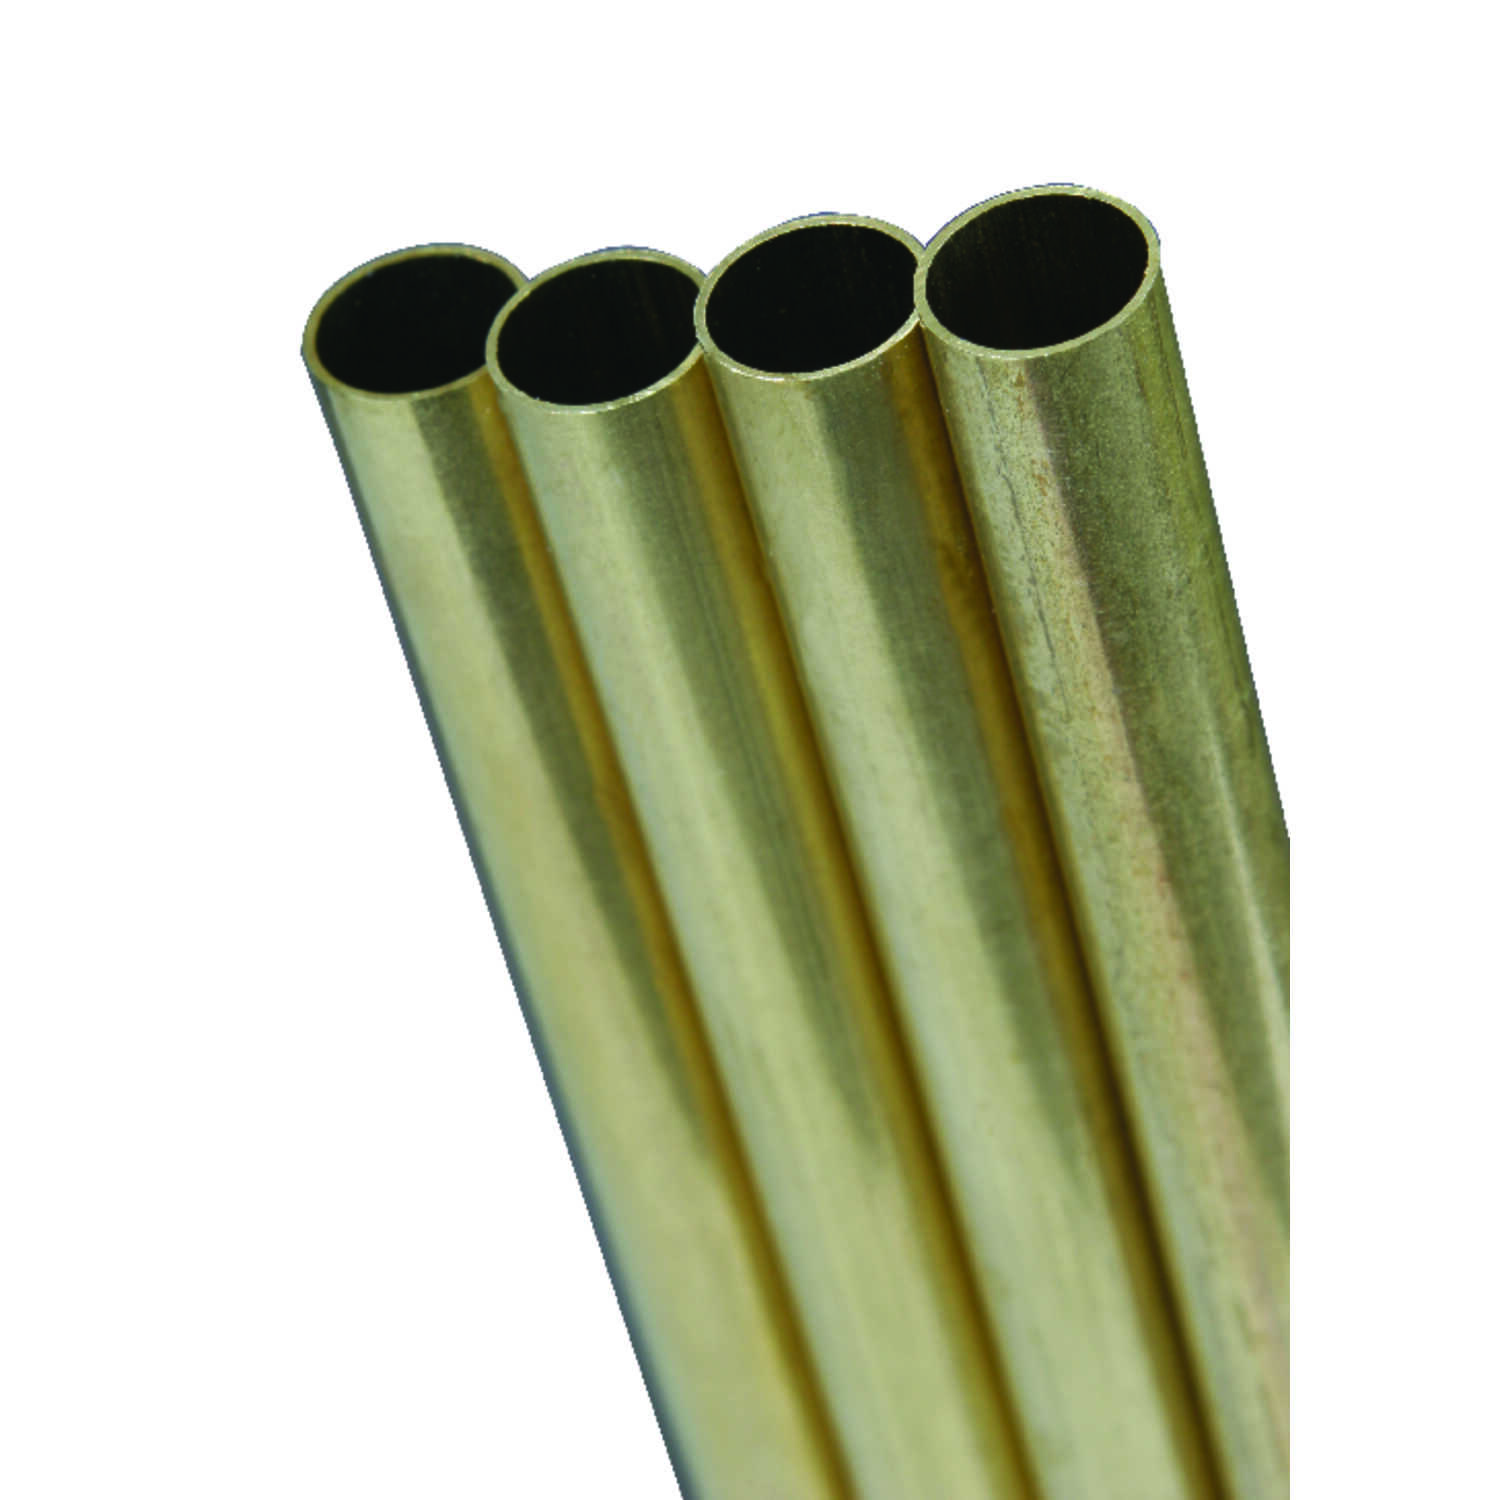 K&S  1/2 in. Dia. x 12 in. L Round  Brass Tube  1